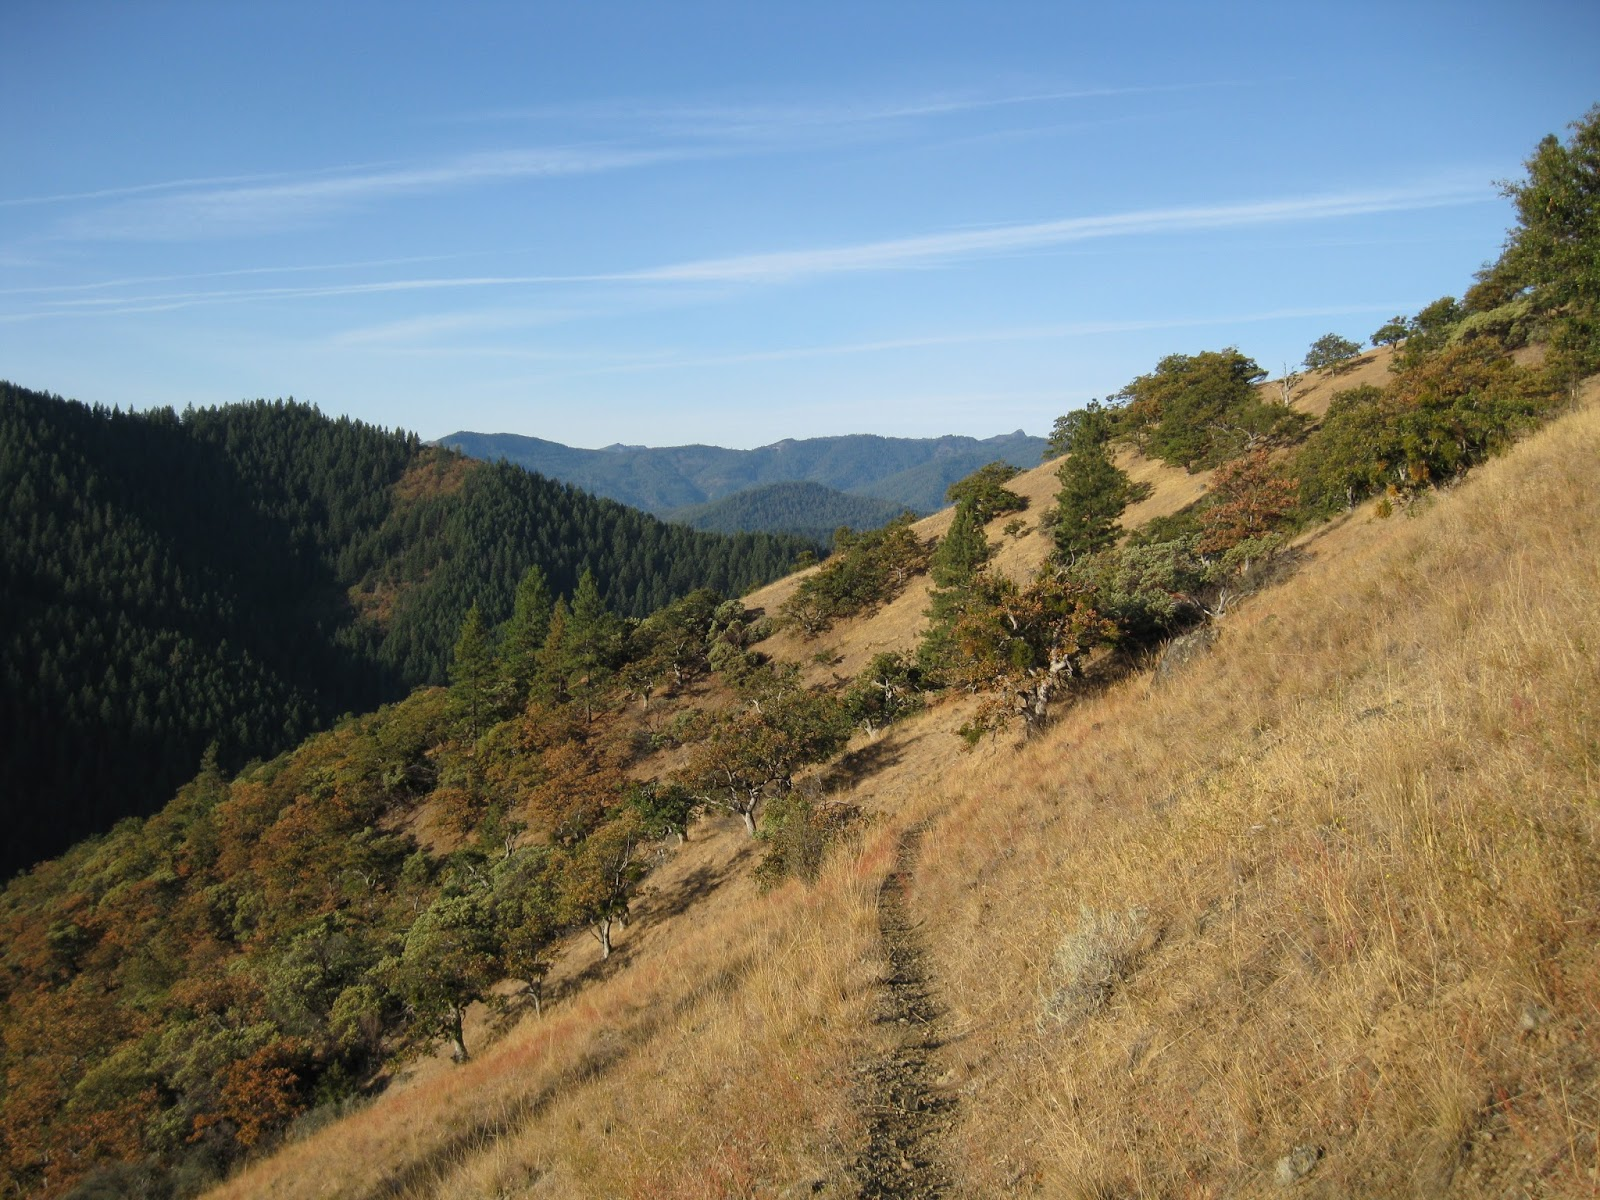 The Siskiyou Crest September 2015